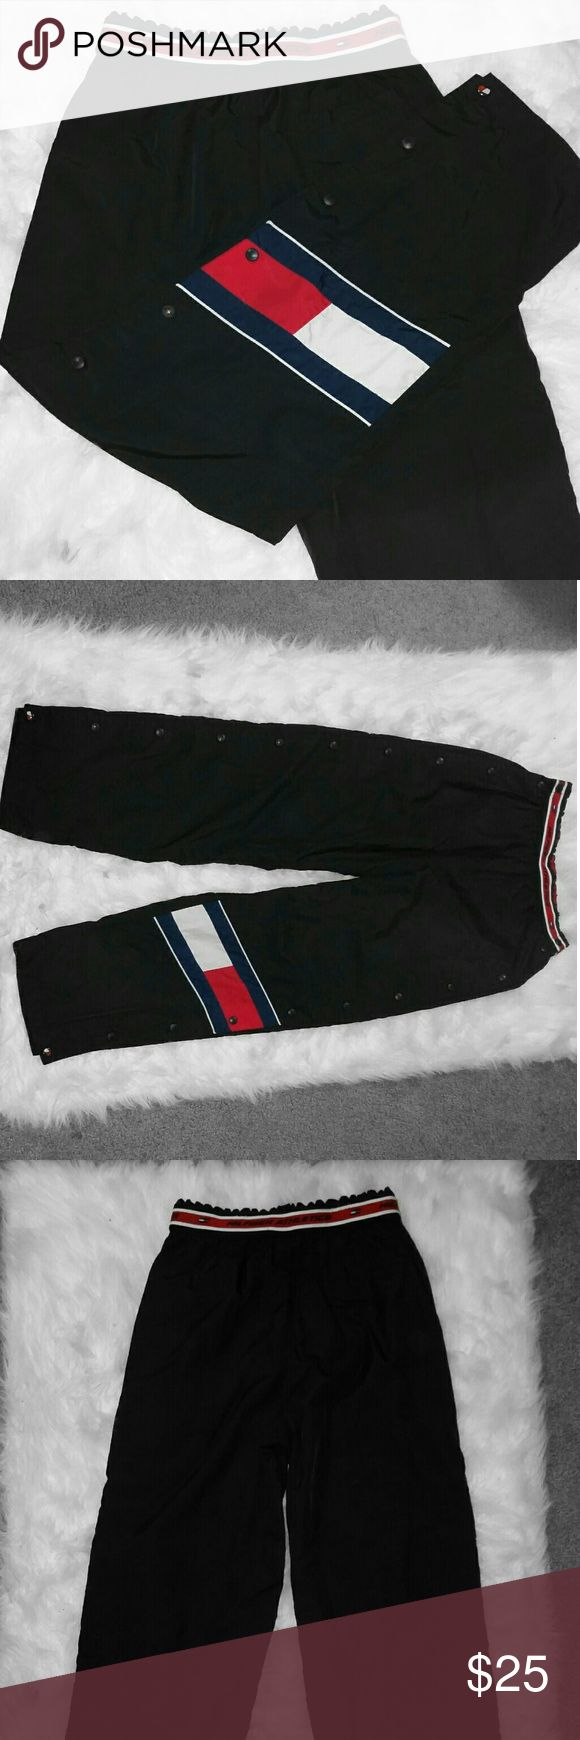 ❤️Tommy Hilfiger vintage logo athletic pants ❤️ Size medium Tommy Hilfiger windbreaker pants. These pants are so cute and feature the iconic logo on the knee and the writing on the waistband. These are a must have in your wardrobe! Save on shipping and add to a bundle! ❤️ Tommy Hilfiger Pants Track Pants & Joggers